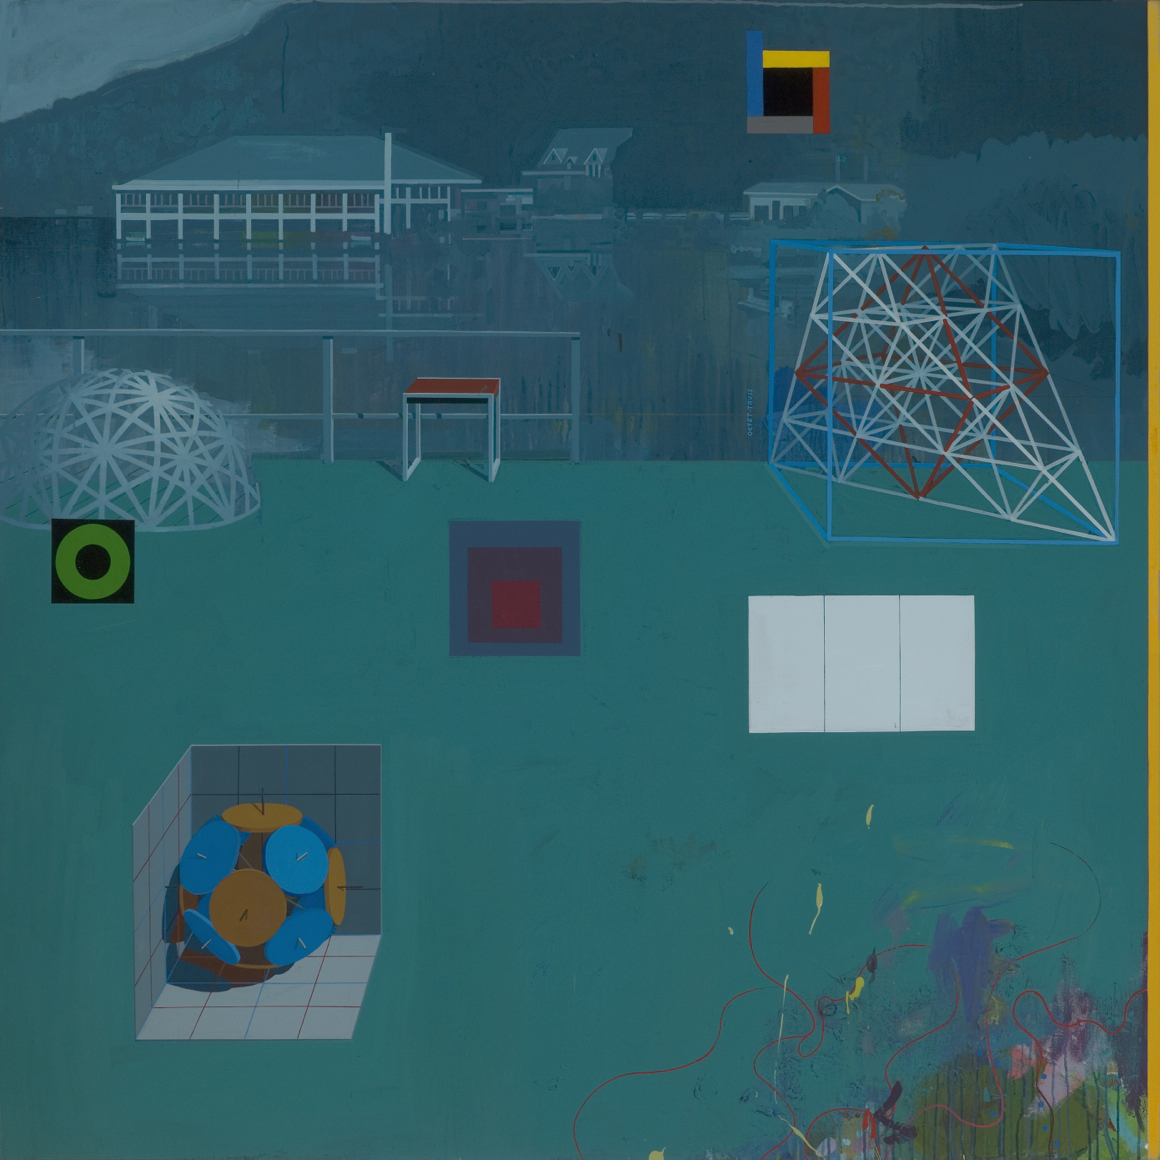 "<p><span class=""name"">Clark Richert</span><br><em>Black Mountain College</em><span class='media'>acrylic on canvas</span>70 x 70 in (177.8 x 177.8 cm)<br>2013<br><a class='inquire' href='mailto:info@gildargallery.com?subject=Artwork Inquiry CRIC0009&body=I am interested in finding out more about Black Mountain College by Clark Richert'>Inquire</a></p>"